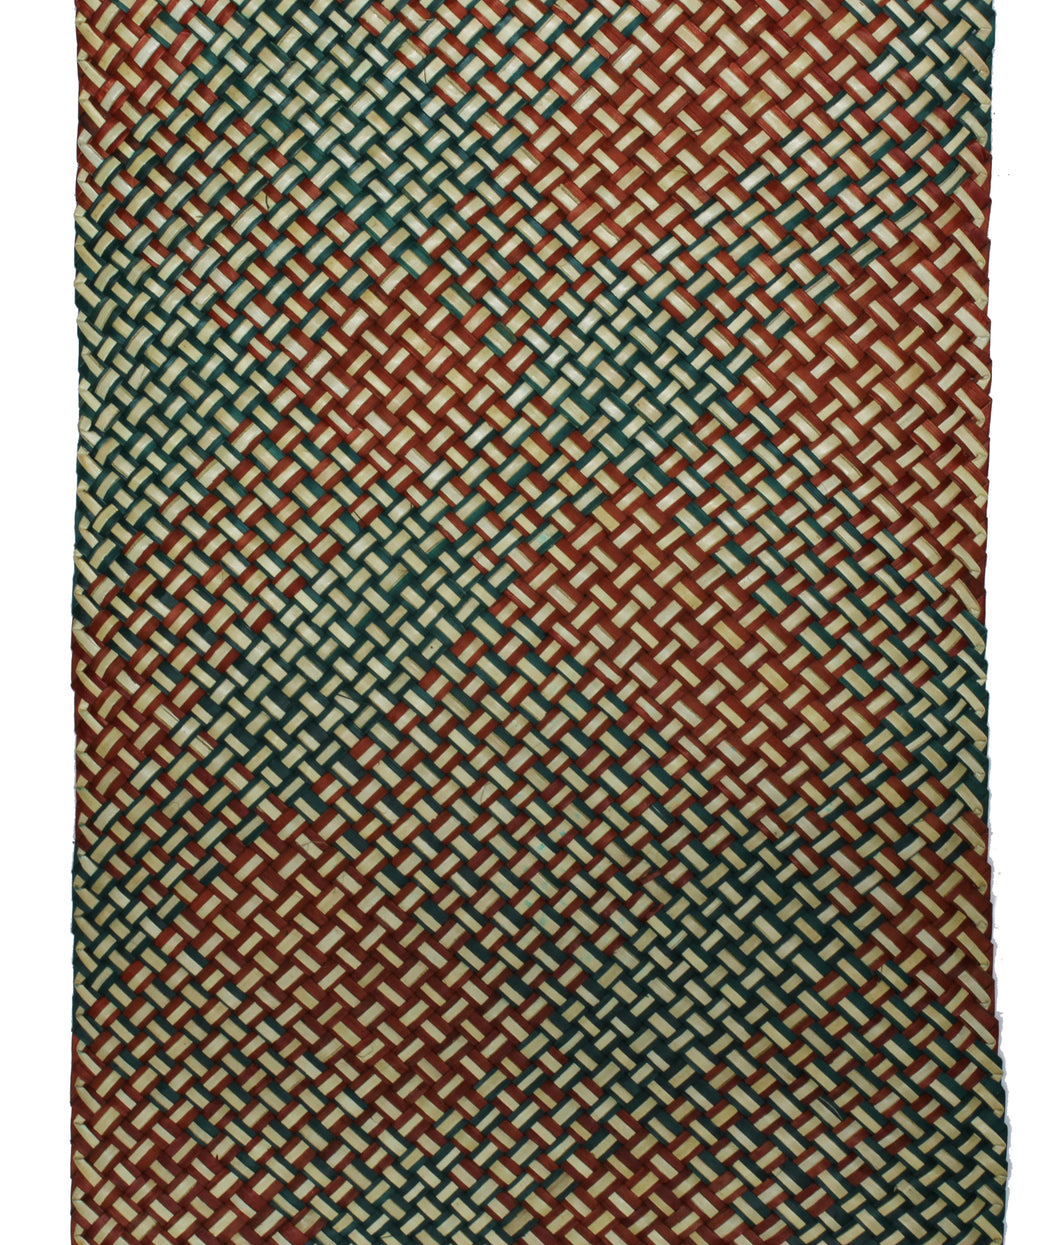 Table Runner Handwoven from Pandan Straw - Orange/Green/Natural